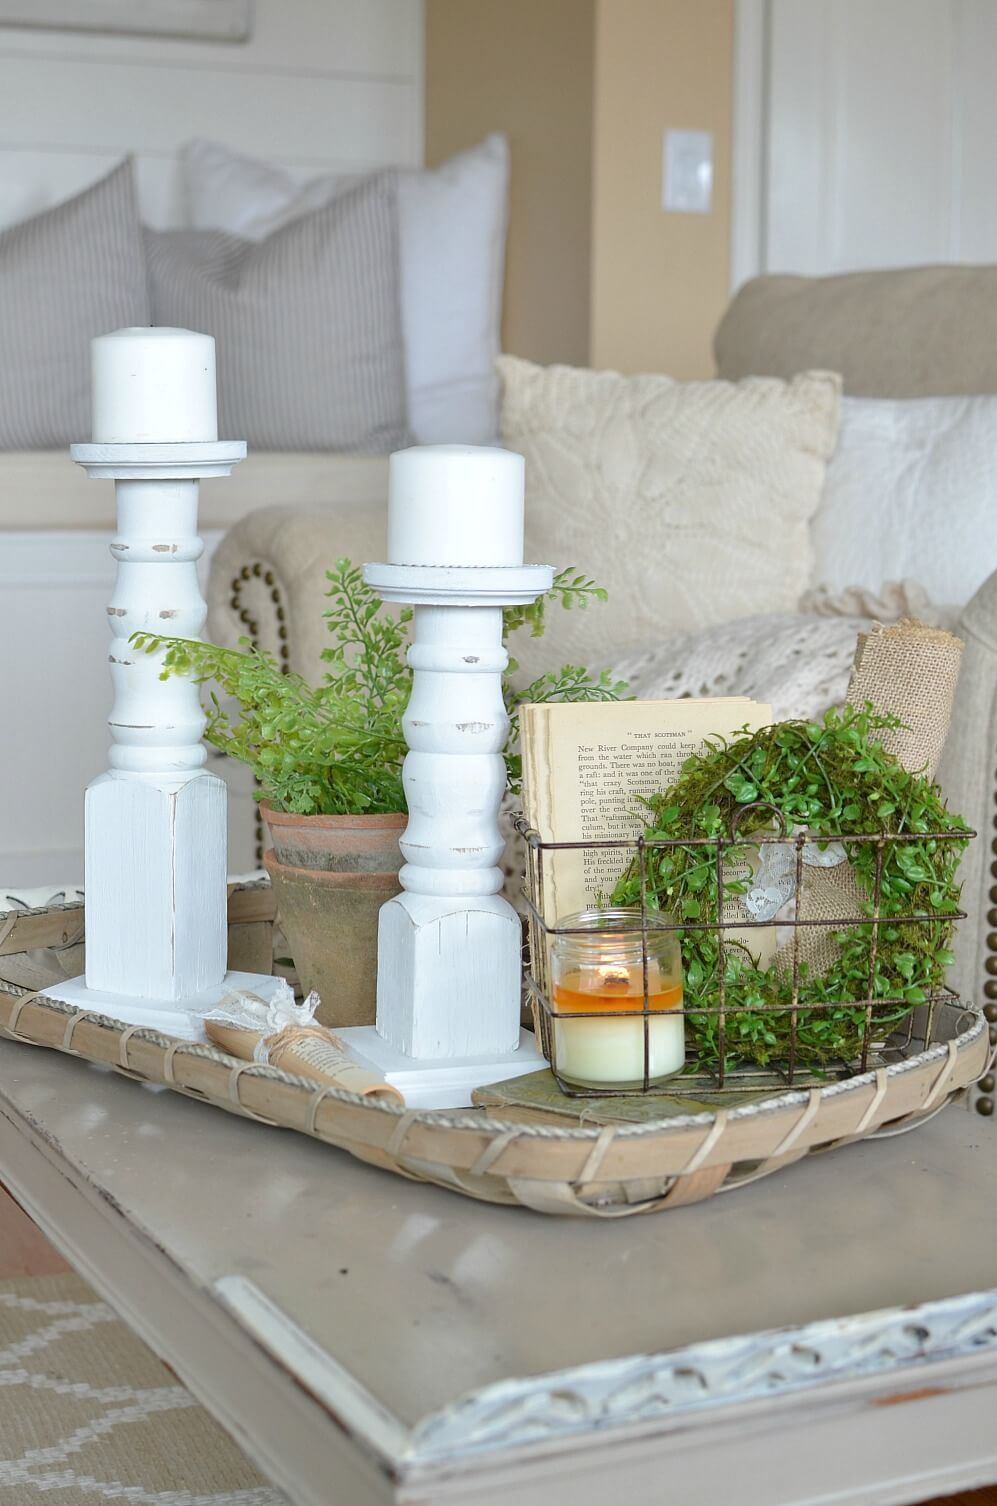 Basket Tray with Greenery and Candles